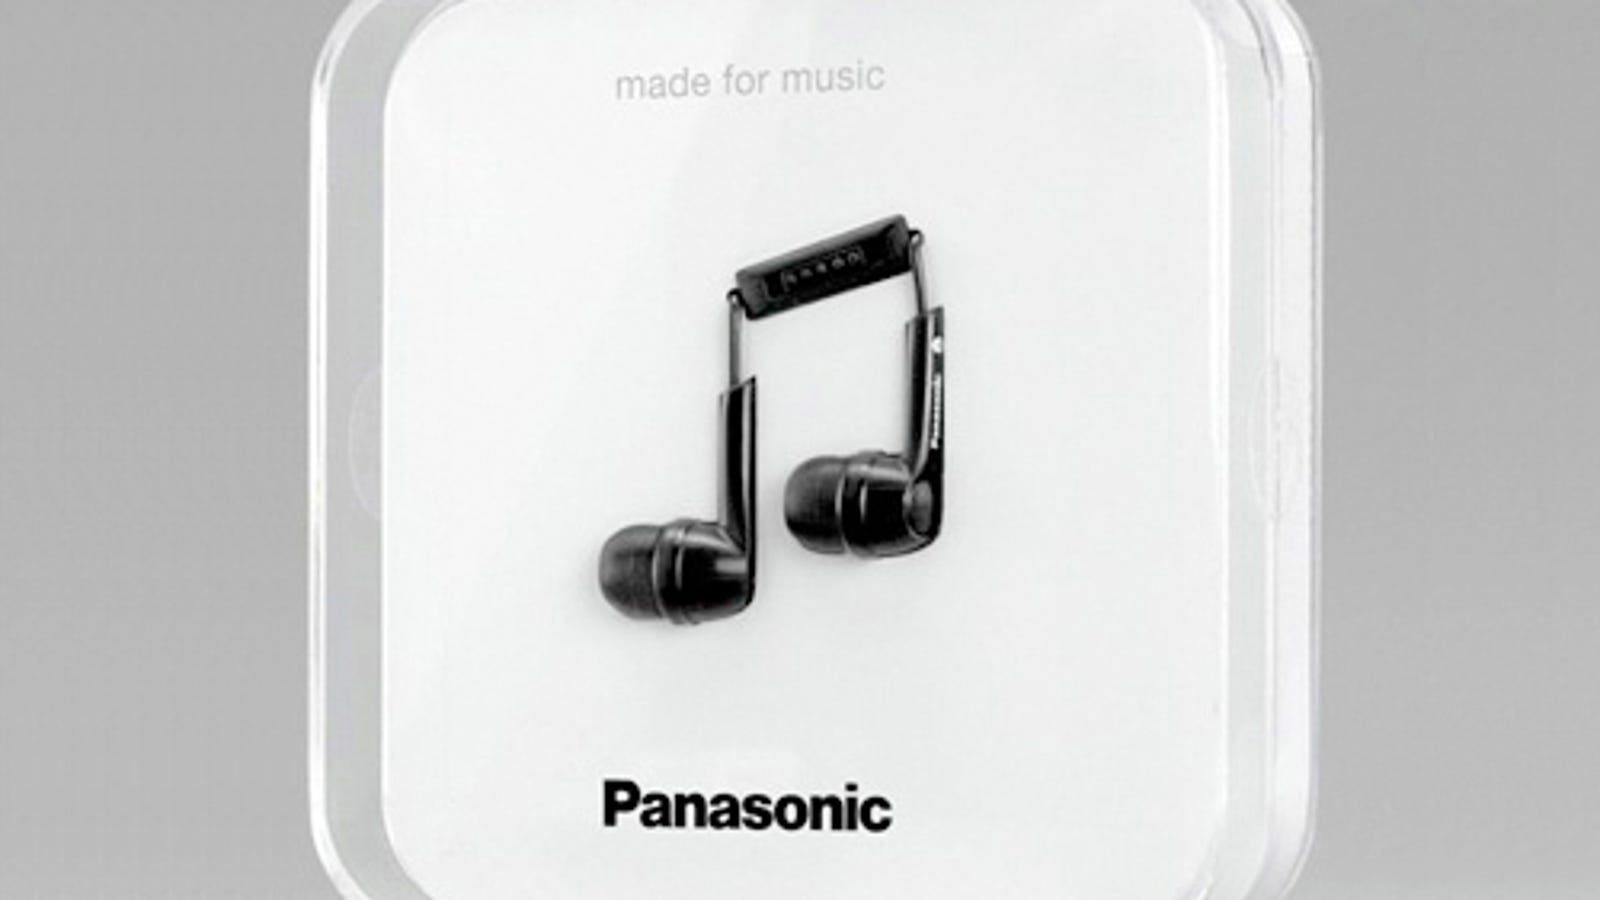 Panasonic's Headphones Packaging Trumps Even Apple's